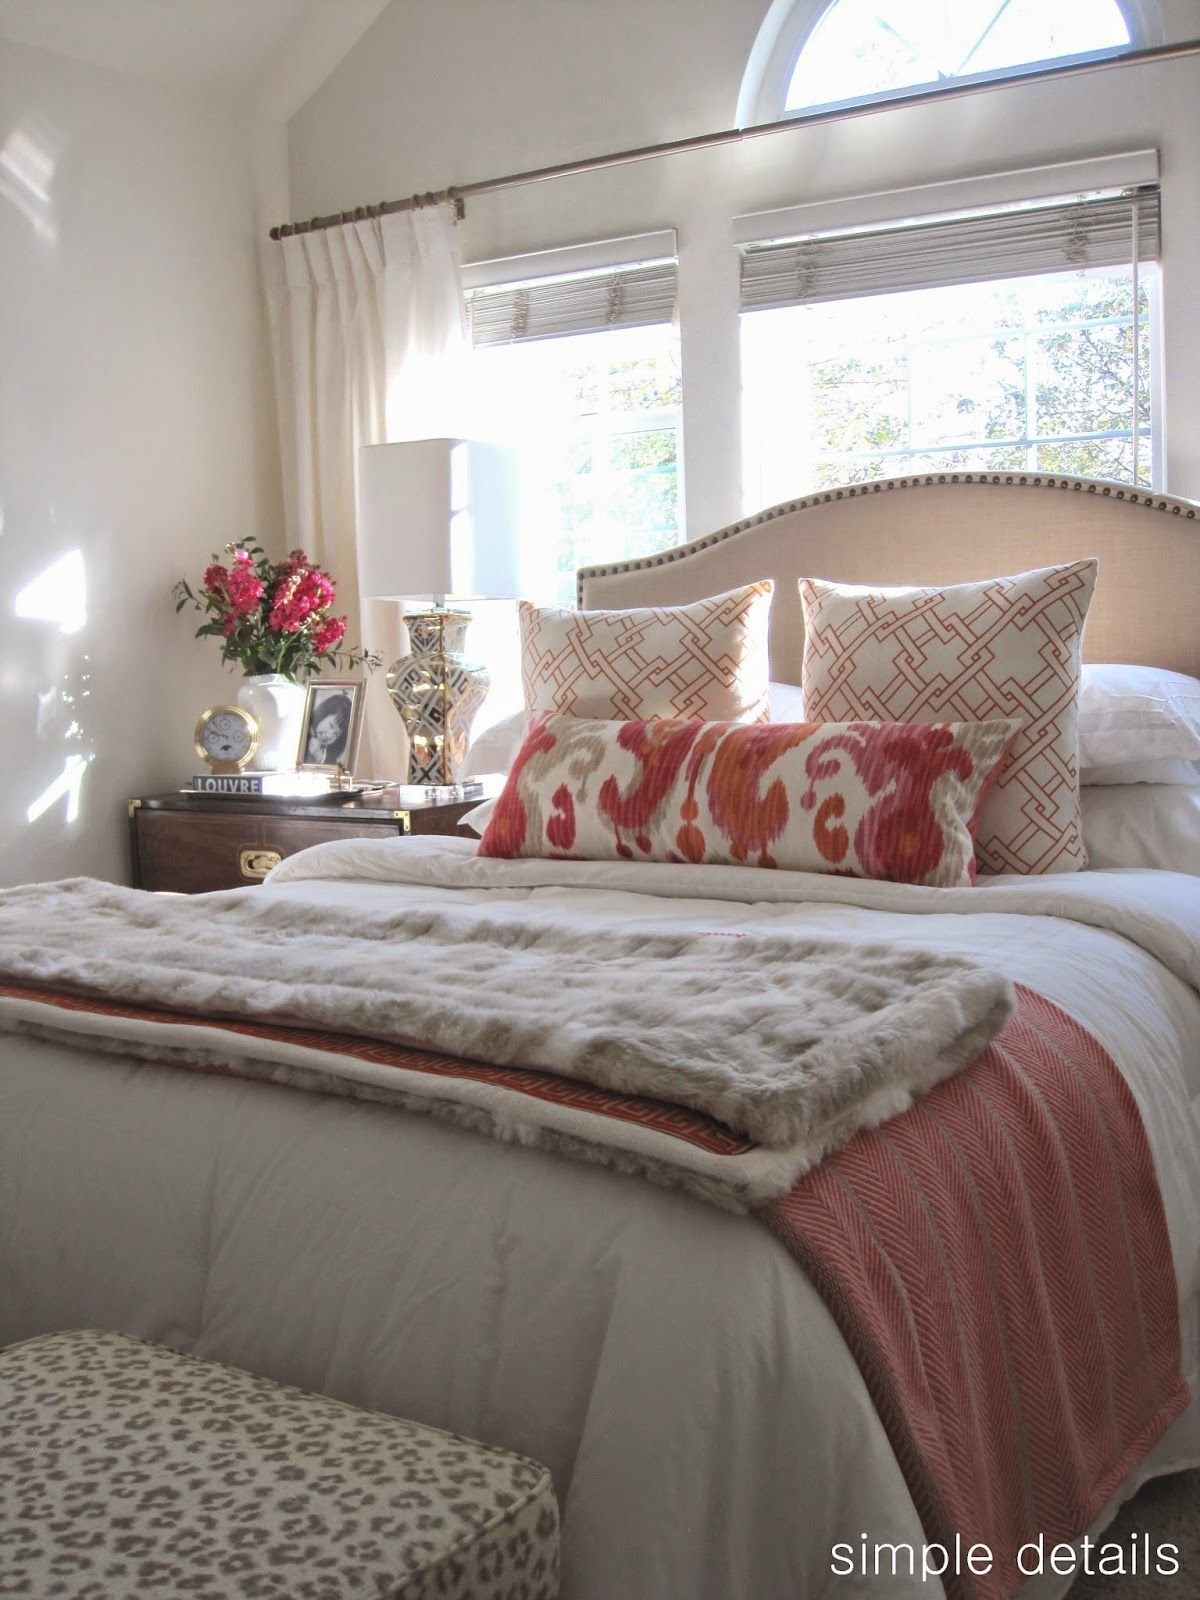 Pin by Jeanne Bradshaw on Home inspirations | Pinterest | Bedrooms ...